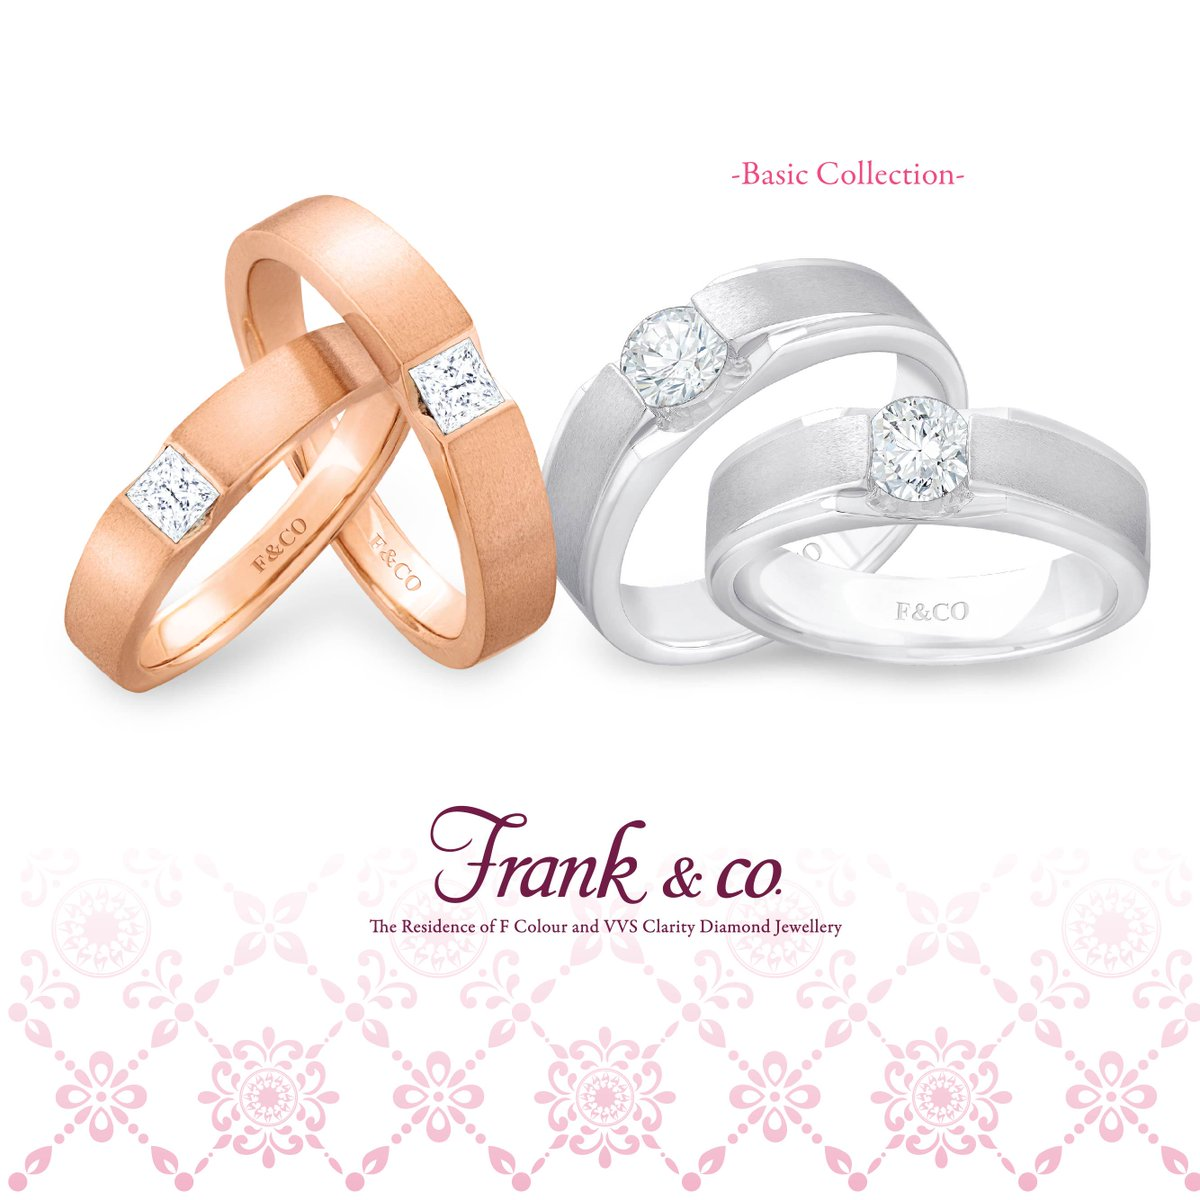 Frank co on Twitter Find out more Wedding Ring with special